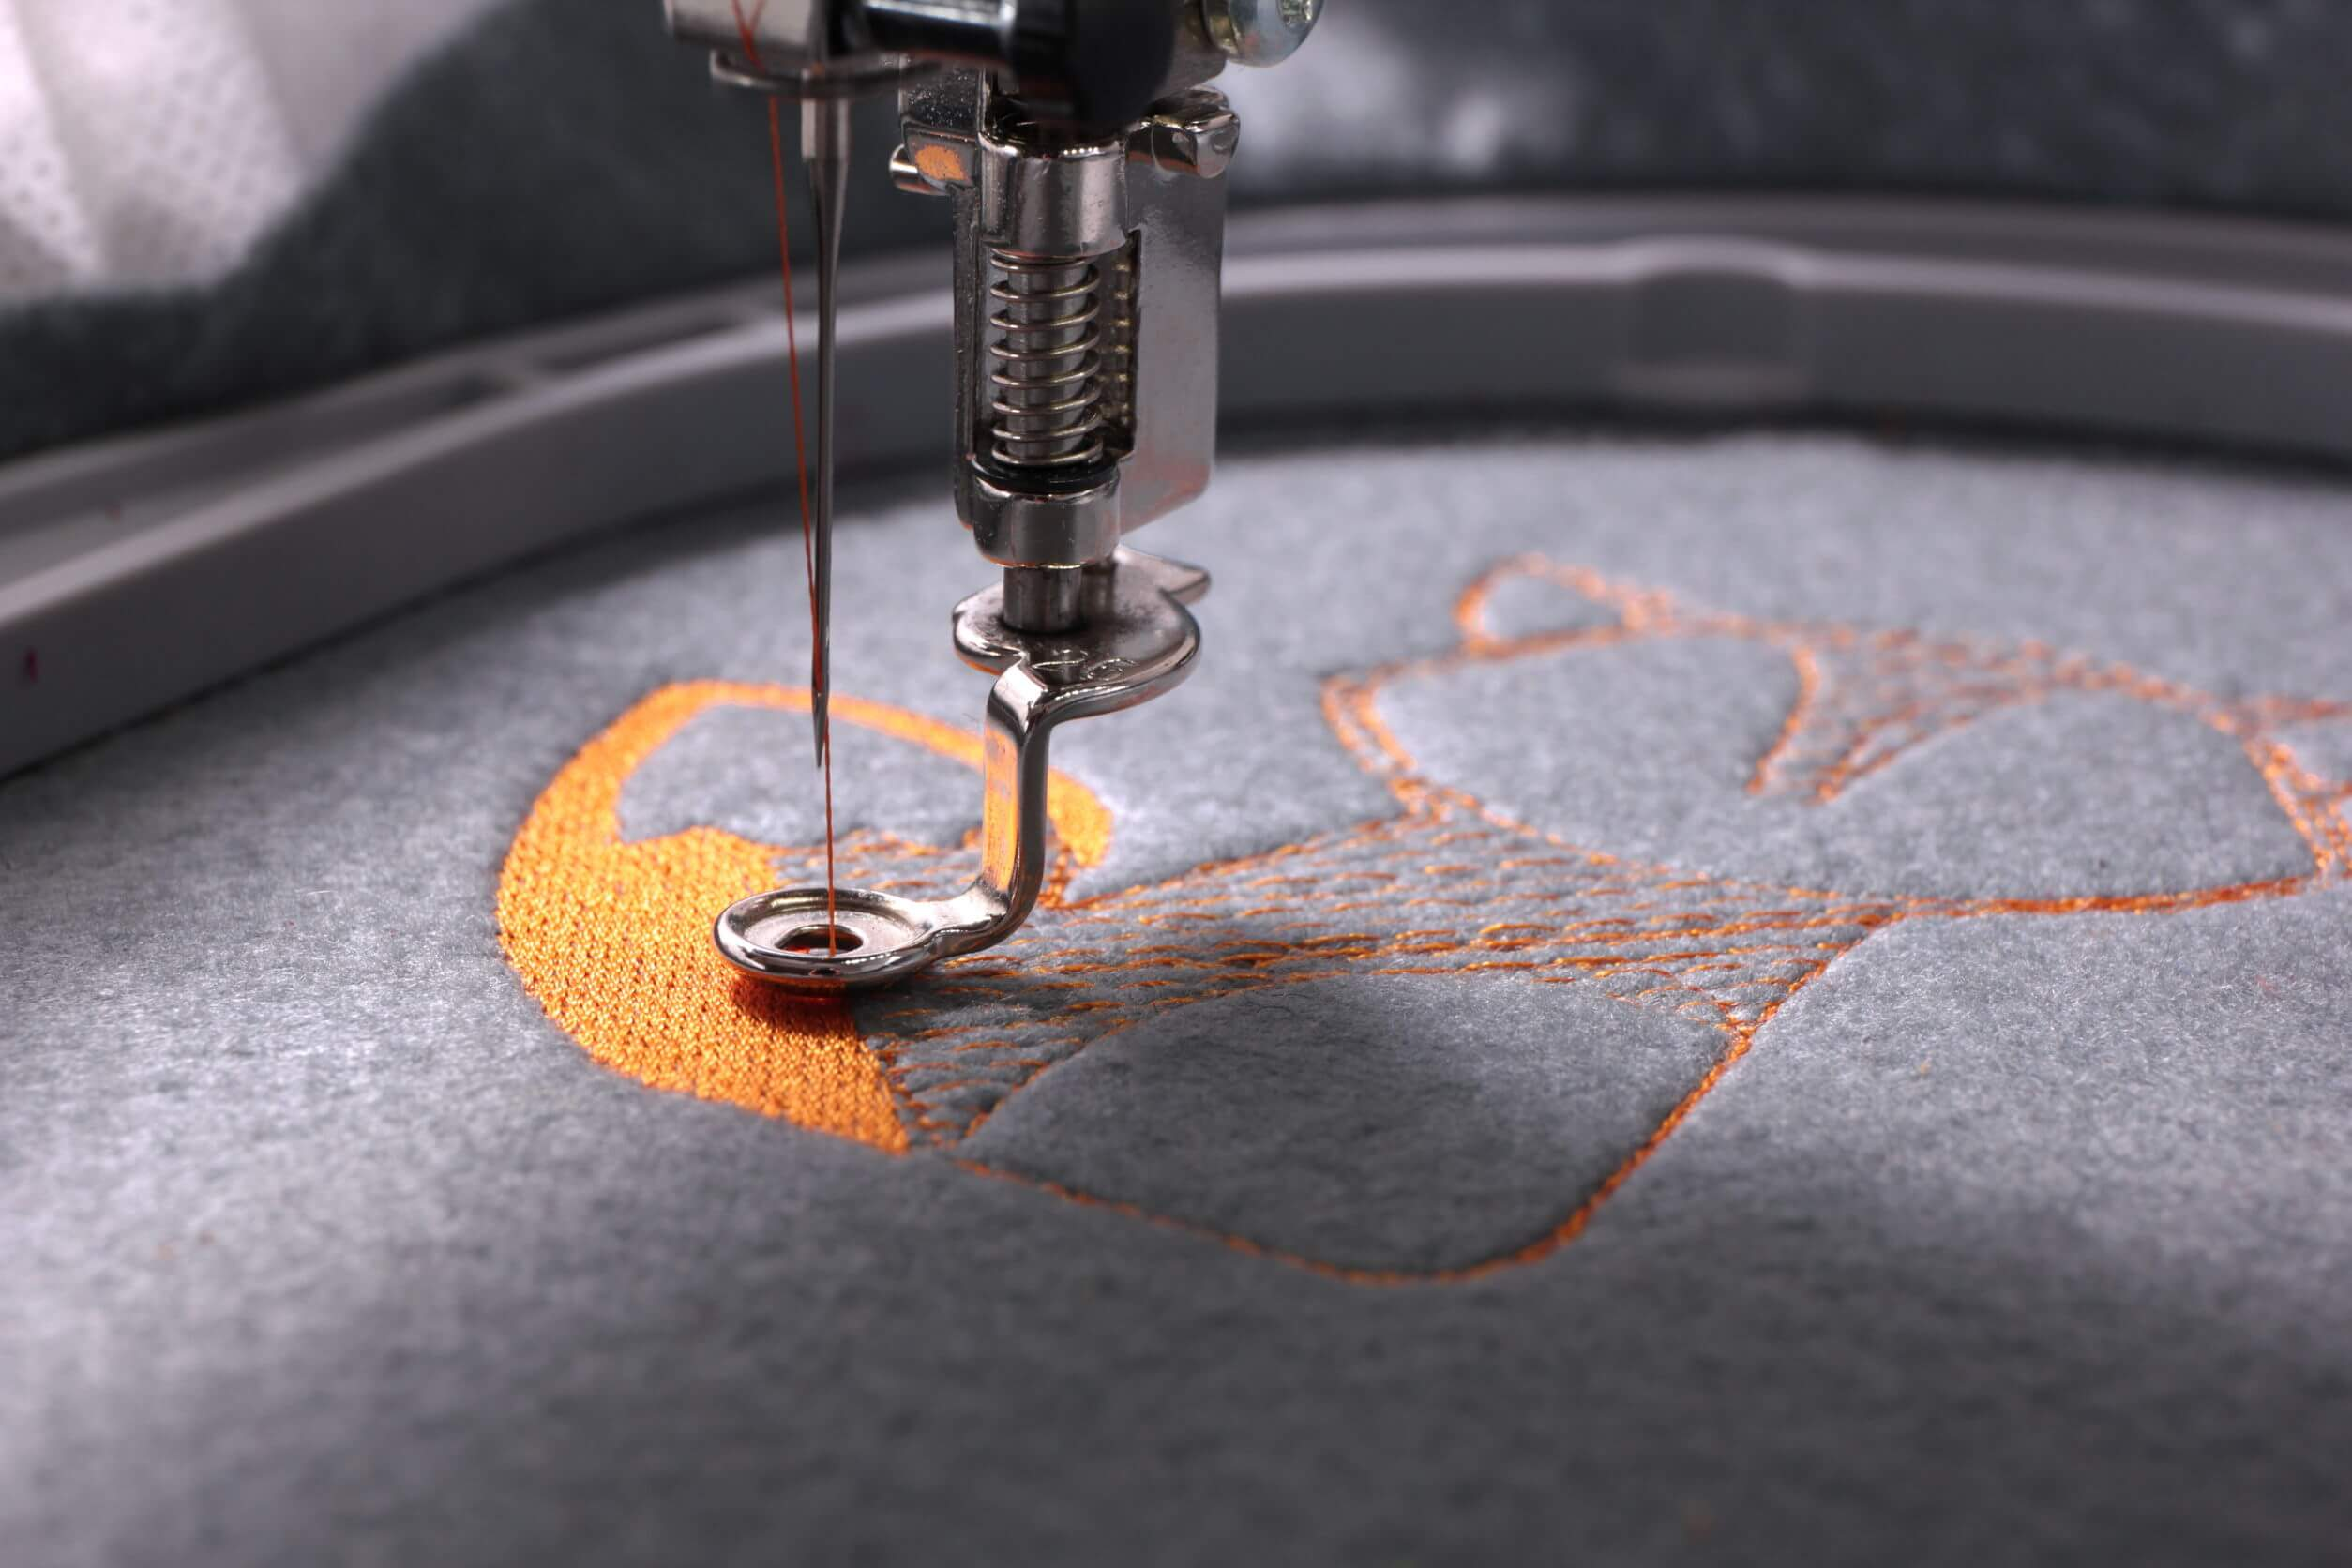 core workwear embroidery